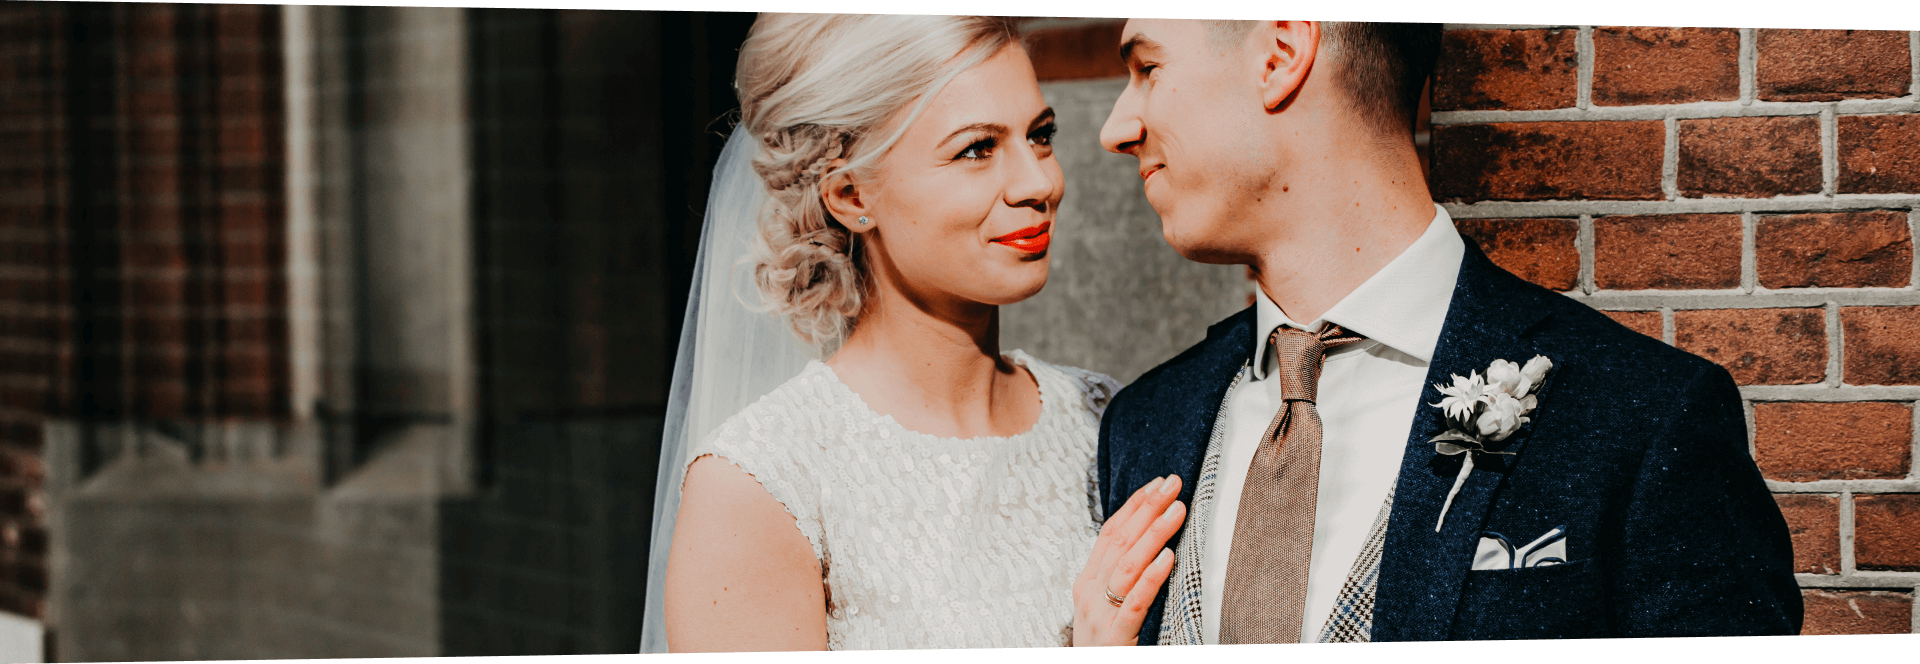 BDF_4535-Wedding Crash Breda 201802-Bas Driessen Photography (2).png